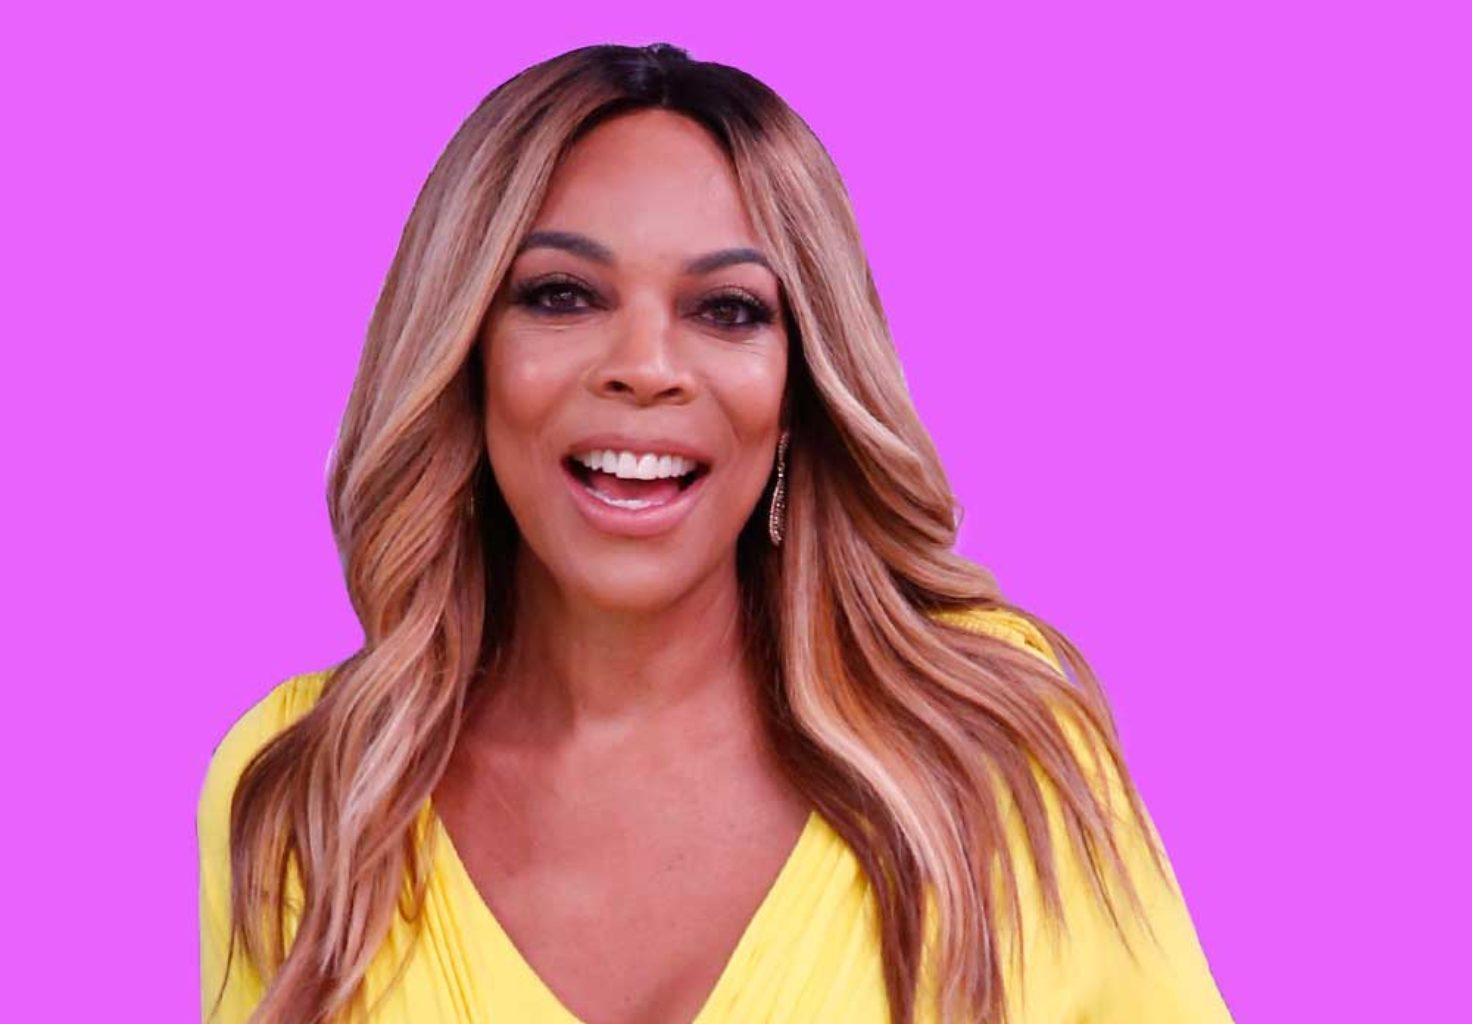 Wendy Williams Goes Up On Stage With Blac Chyna And Shows Off A Lot Of Skin - See The Video